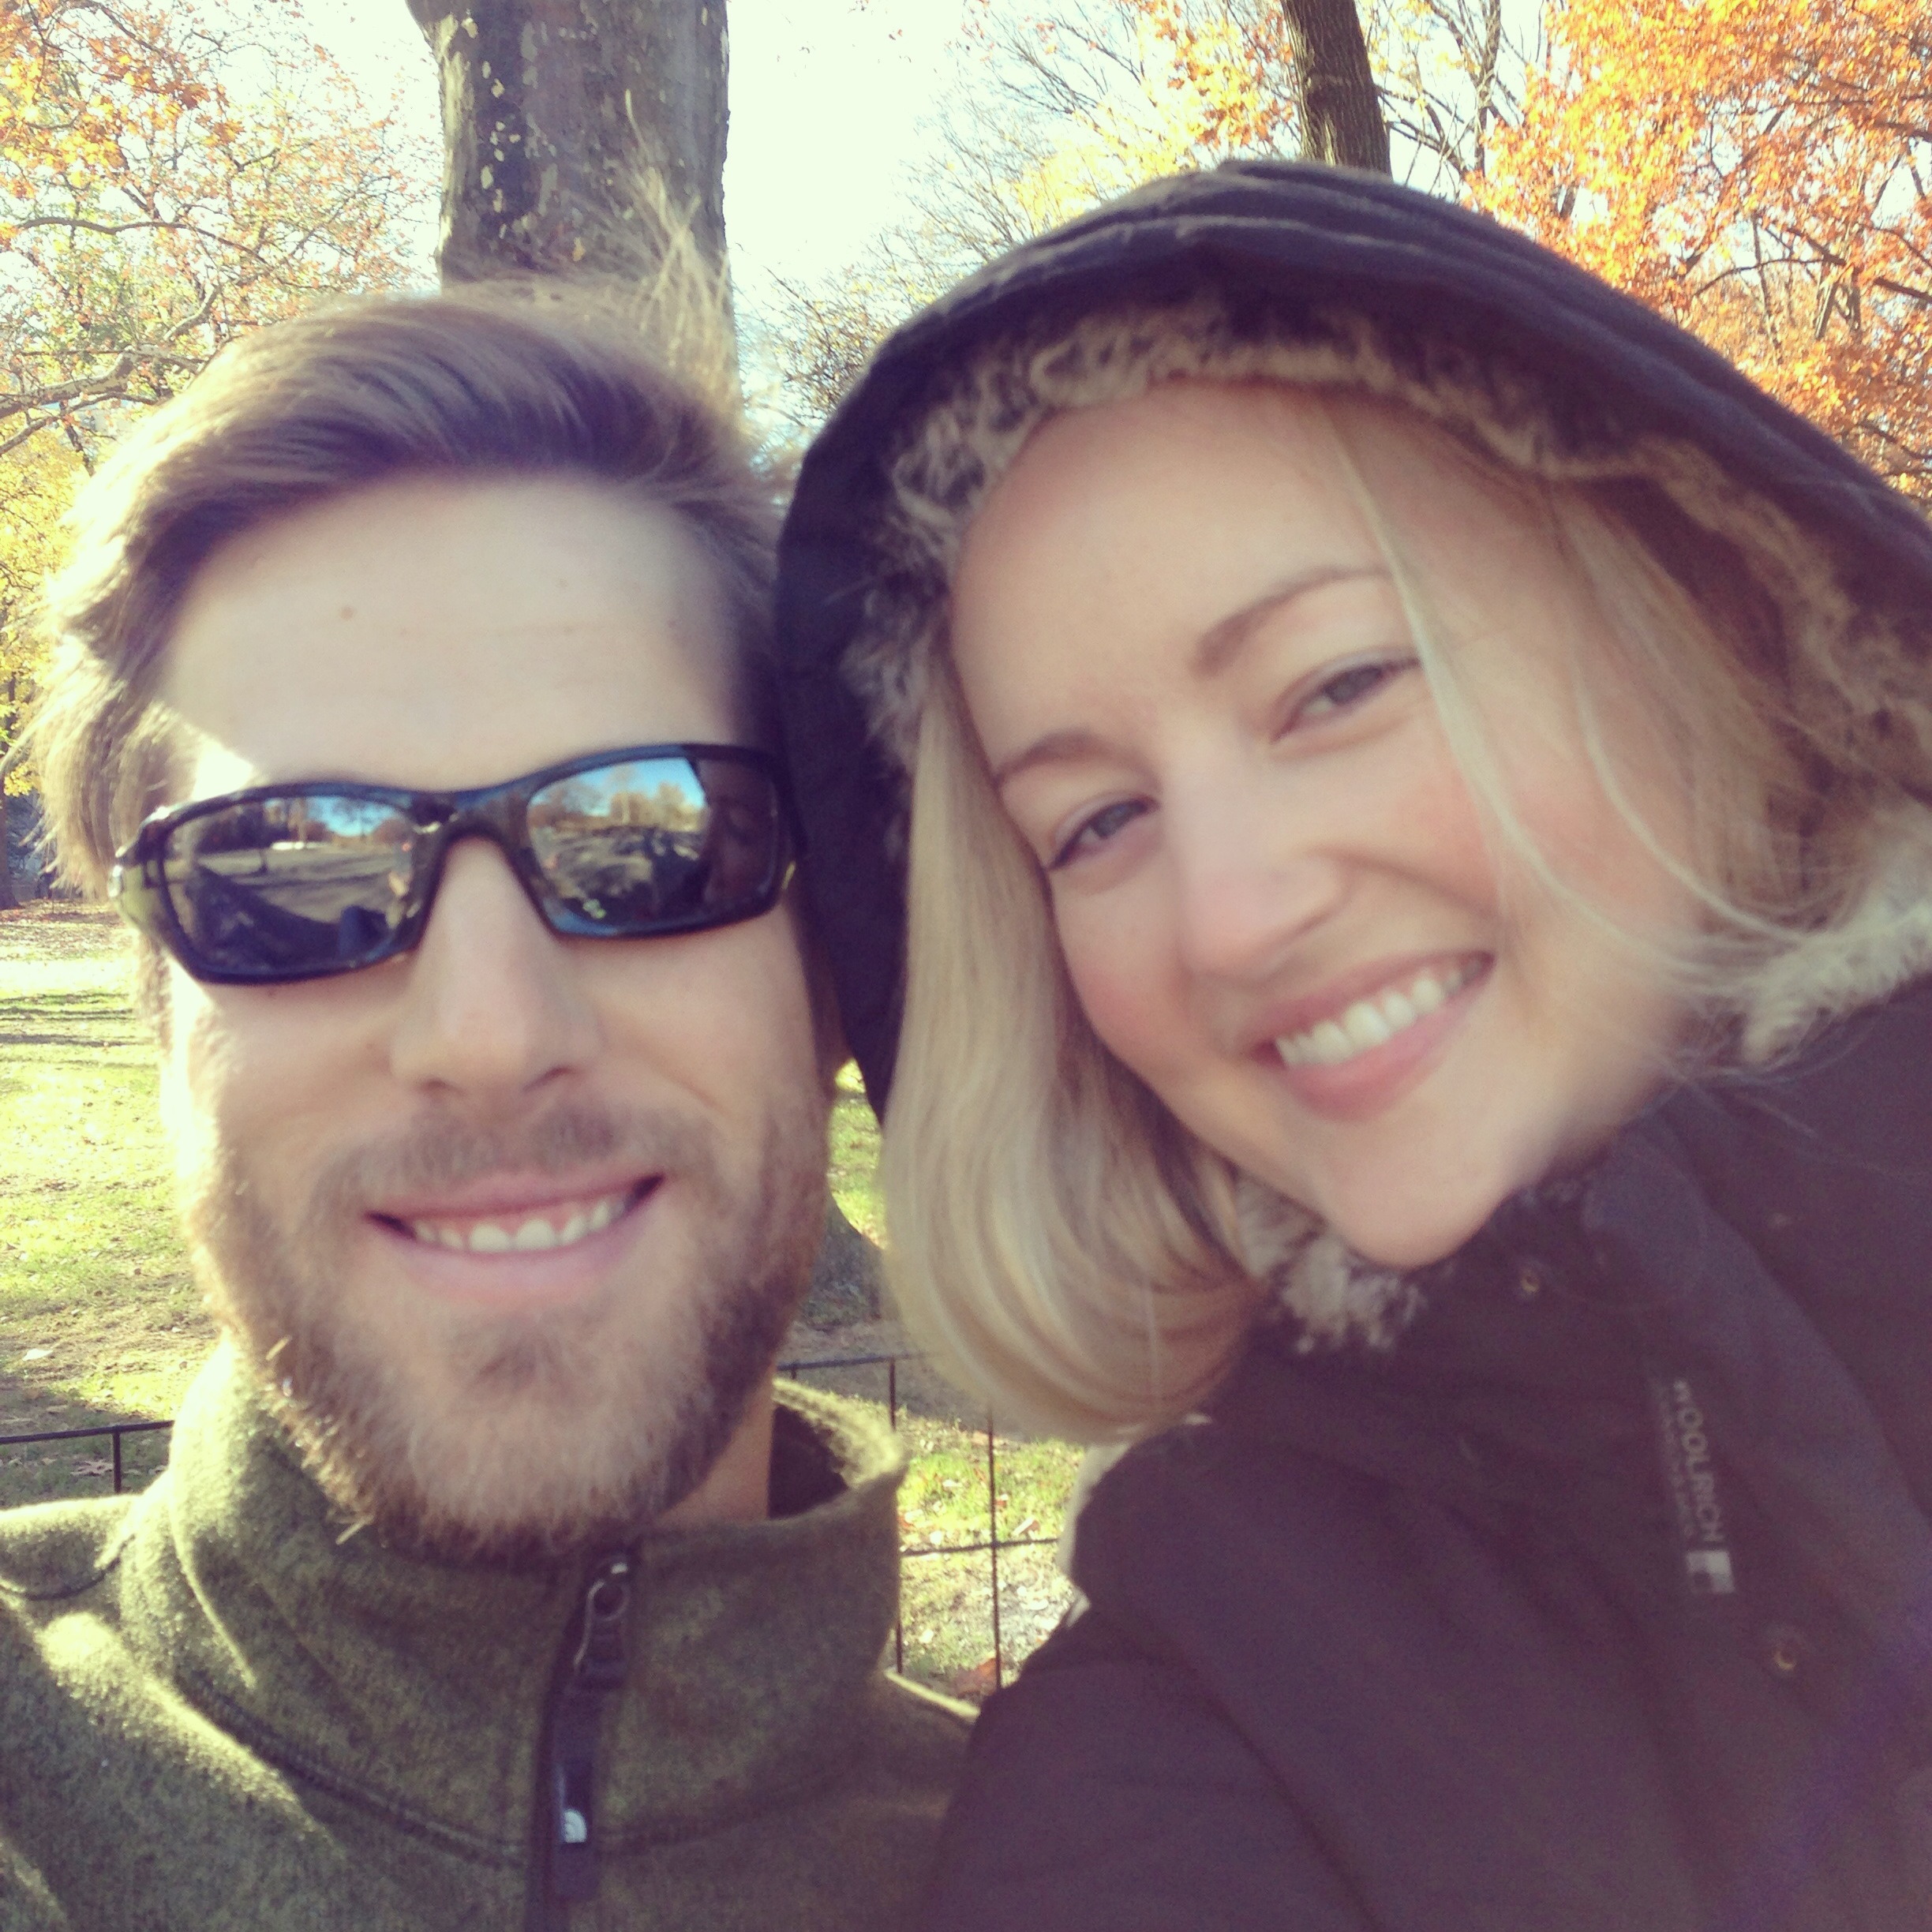 with Patrick in Central Park 11.23.13